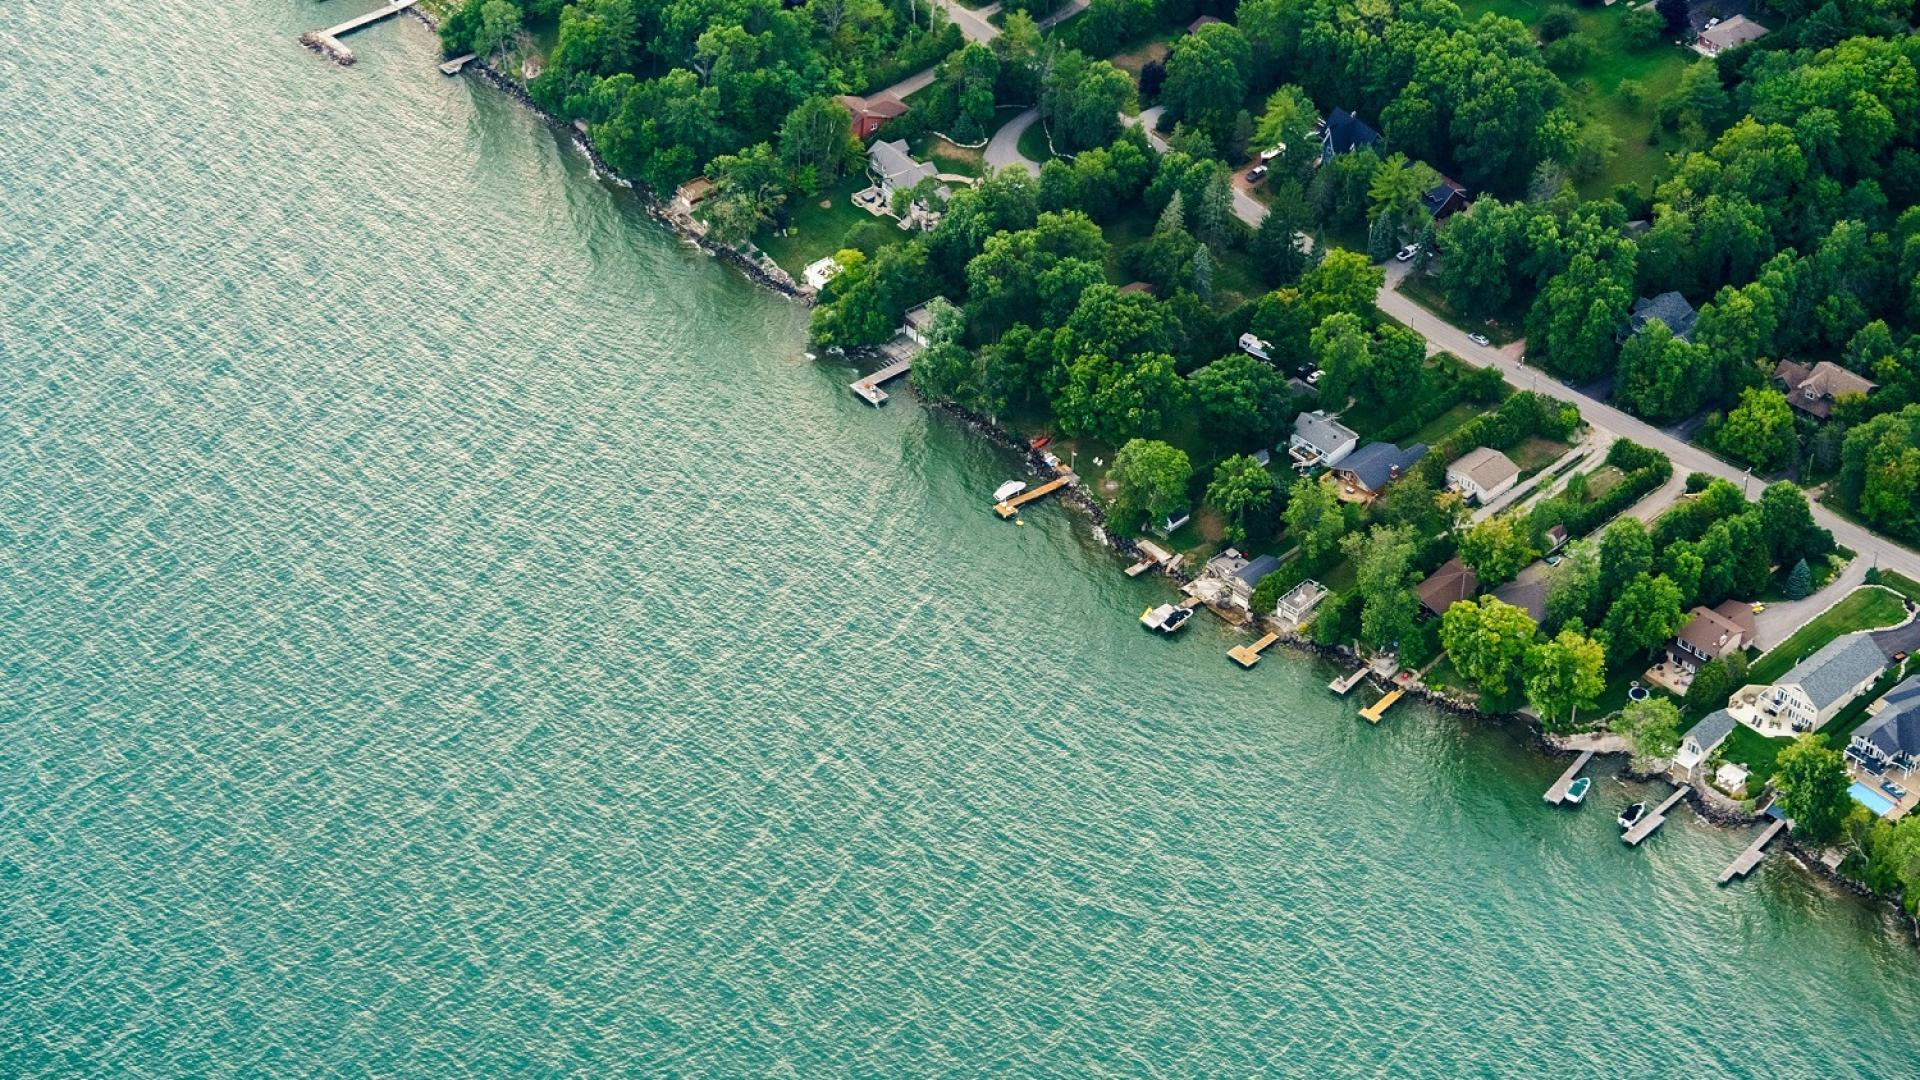 Image of shoreline of Lake Ontario near Toronto, Ontario